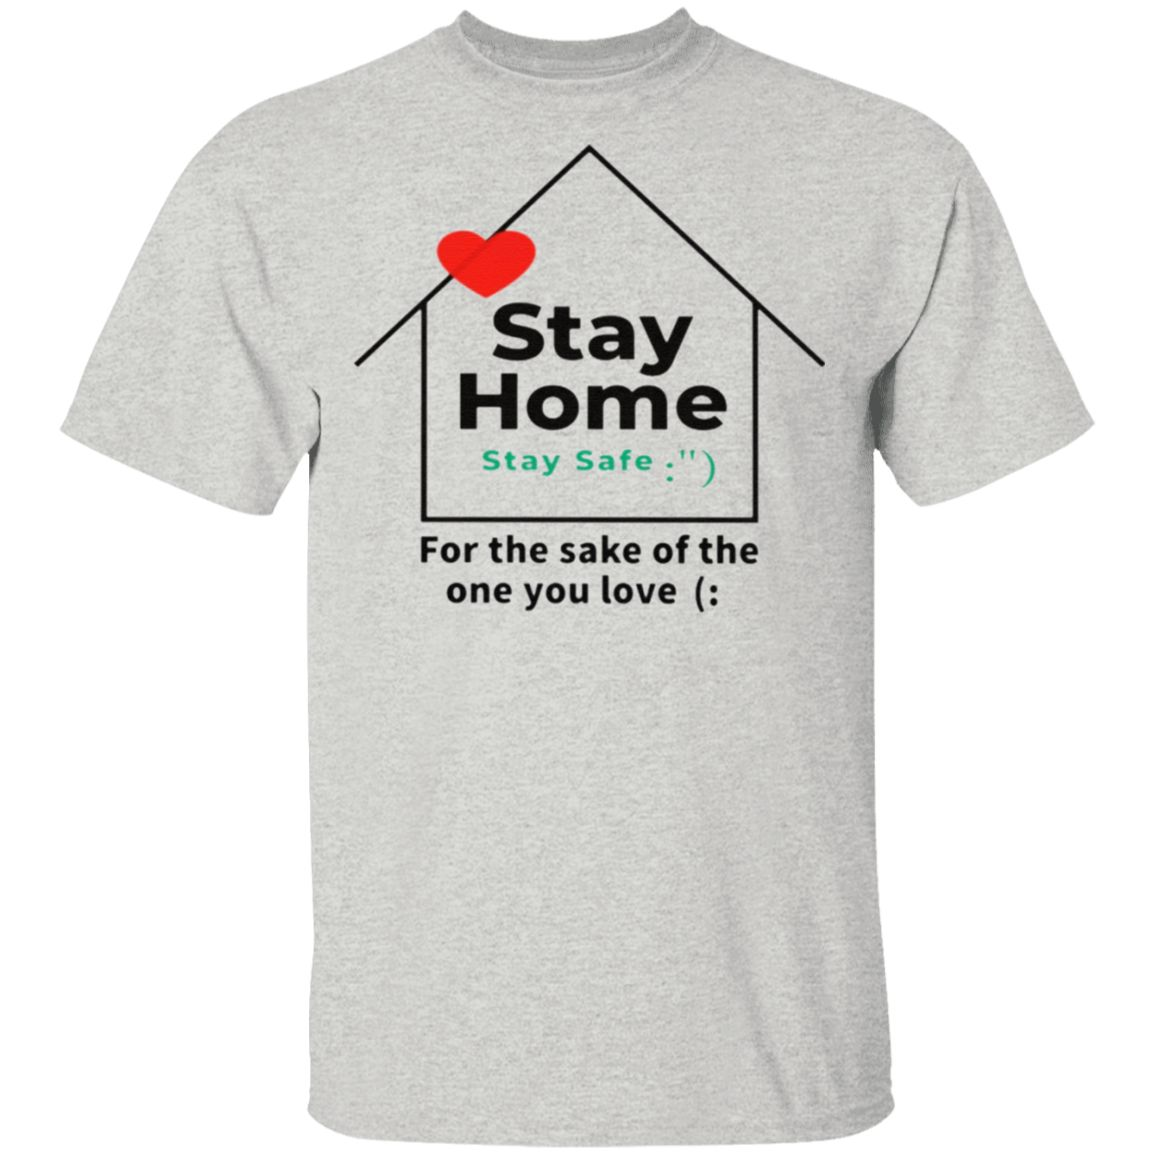 Stay home in a tshirt